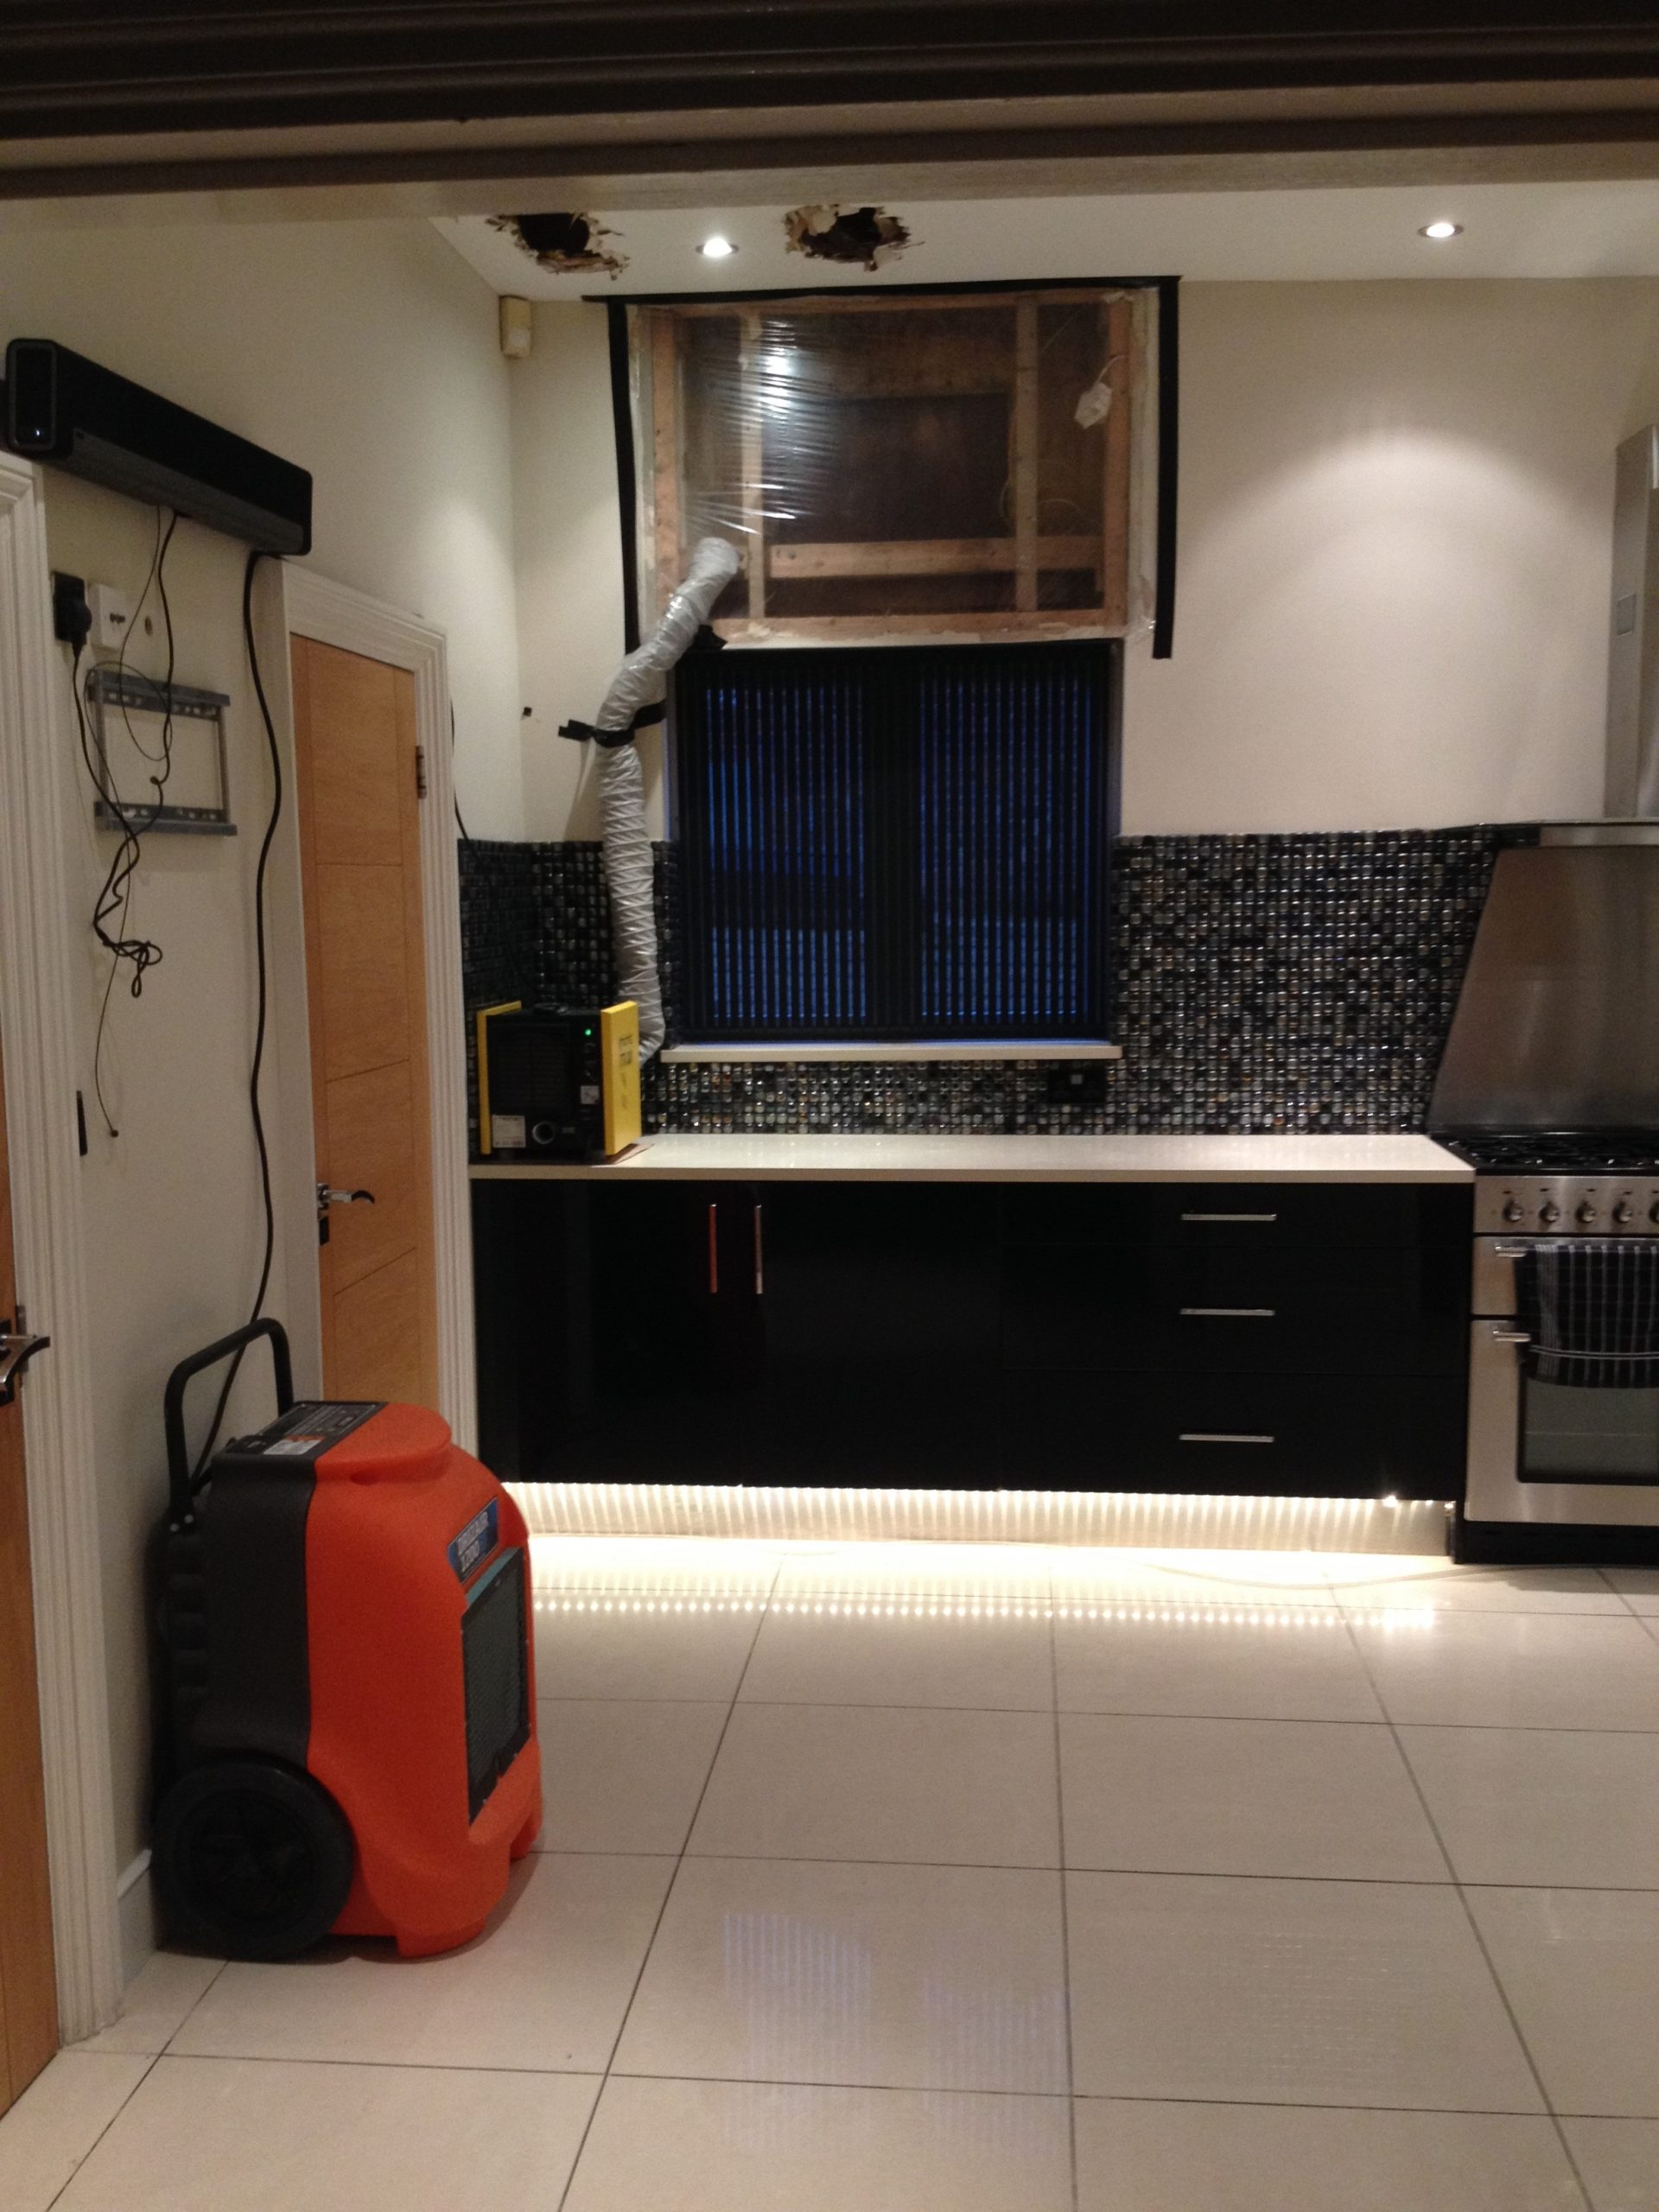 drying equipment in residential property